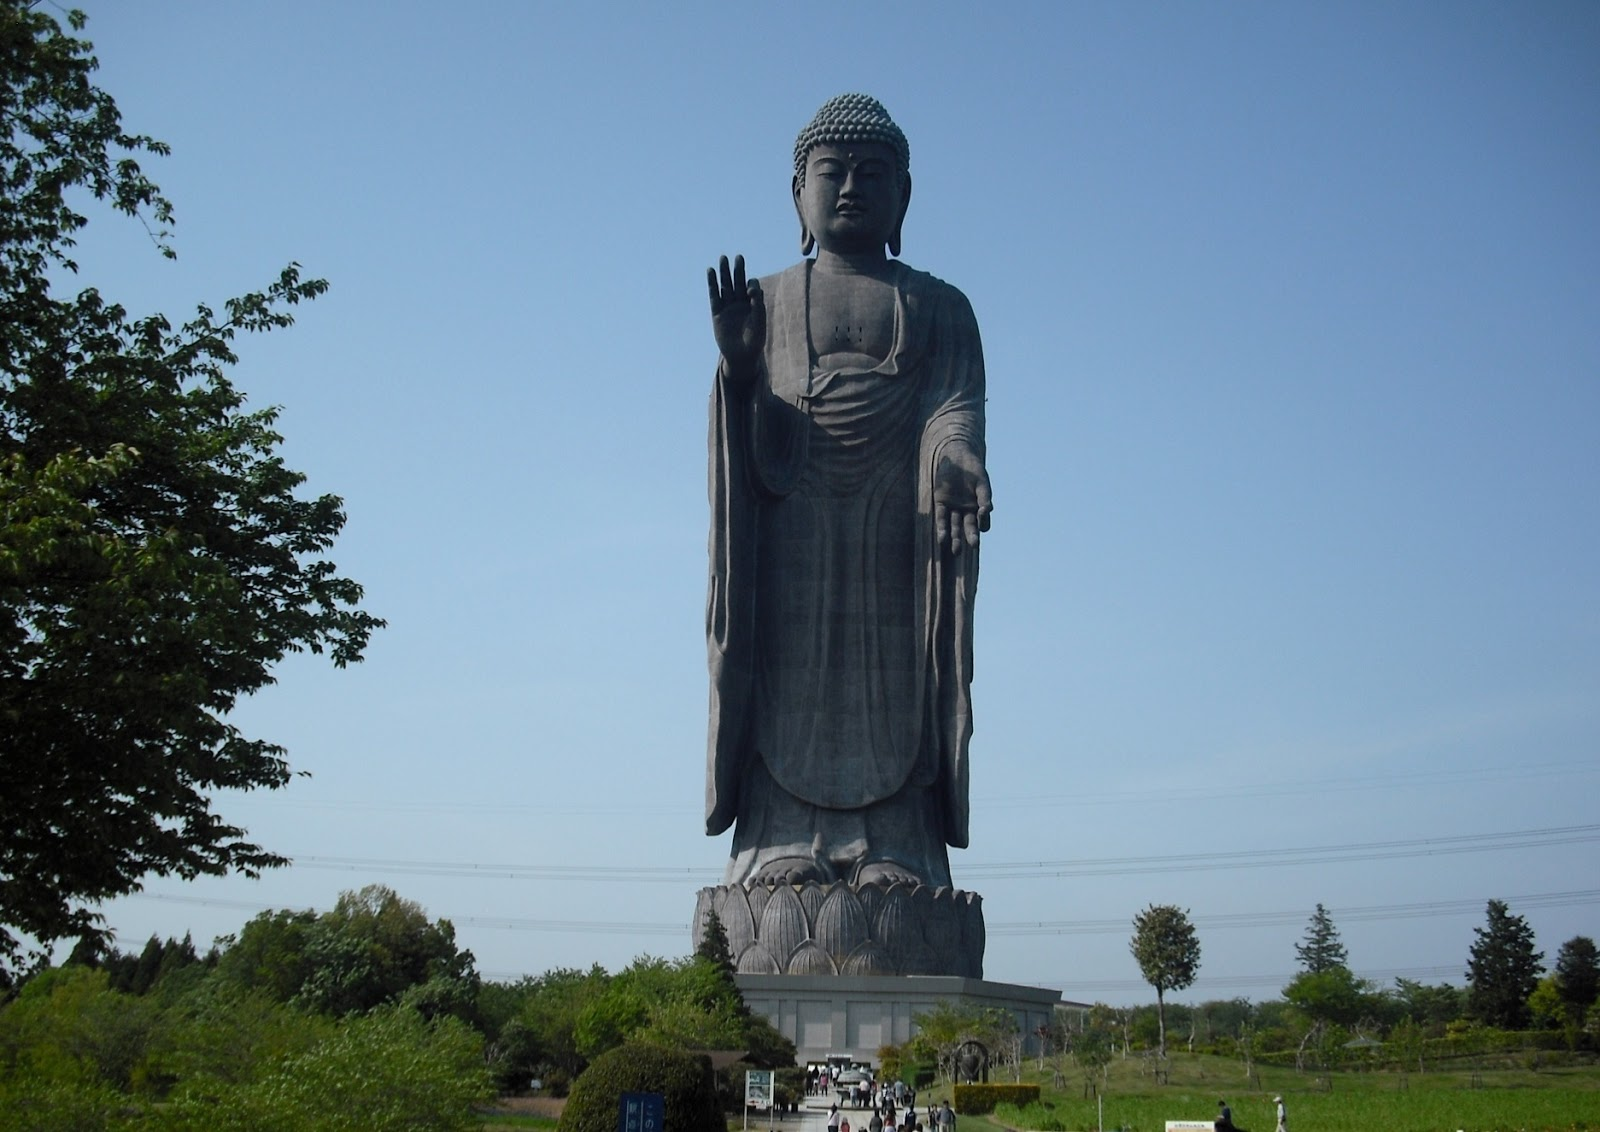 Ushiku Daibutsu Vs Statue Of Liberty Tallest Statues in the...